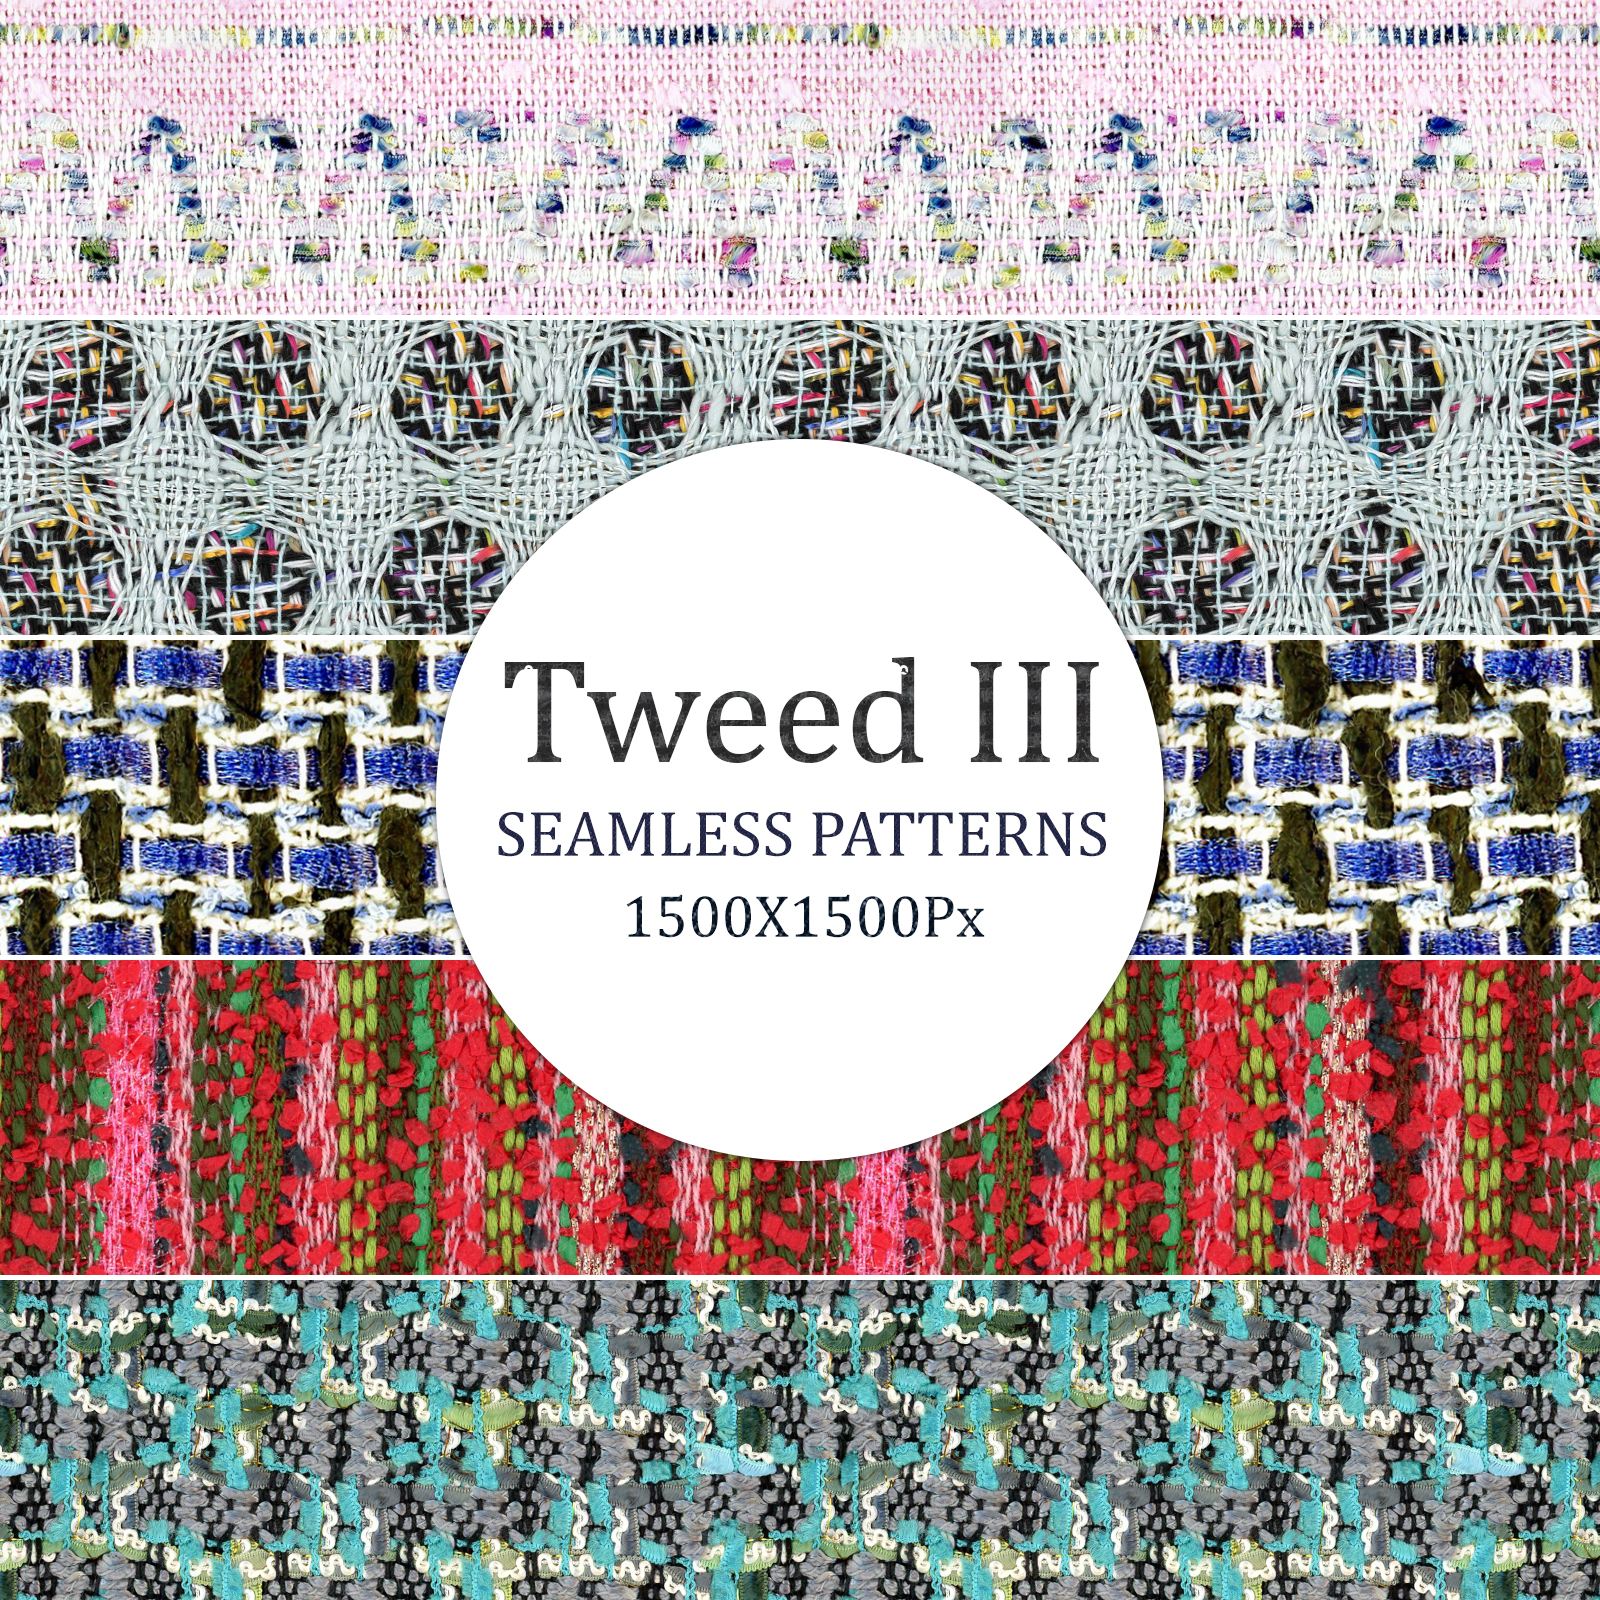 Tweed III - Seamless Patterns